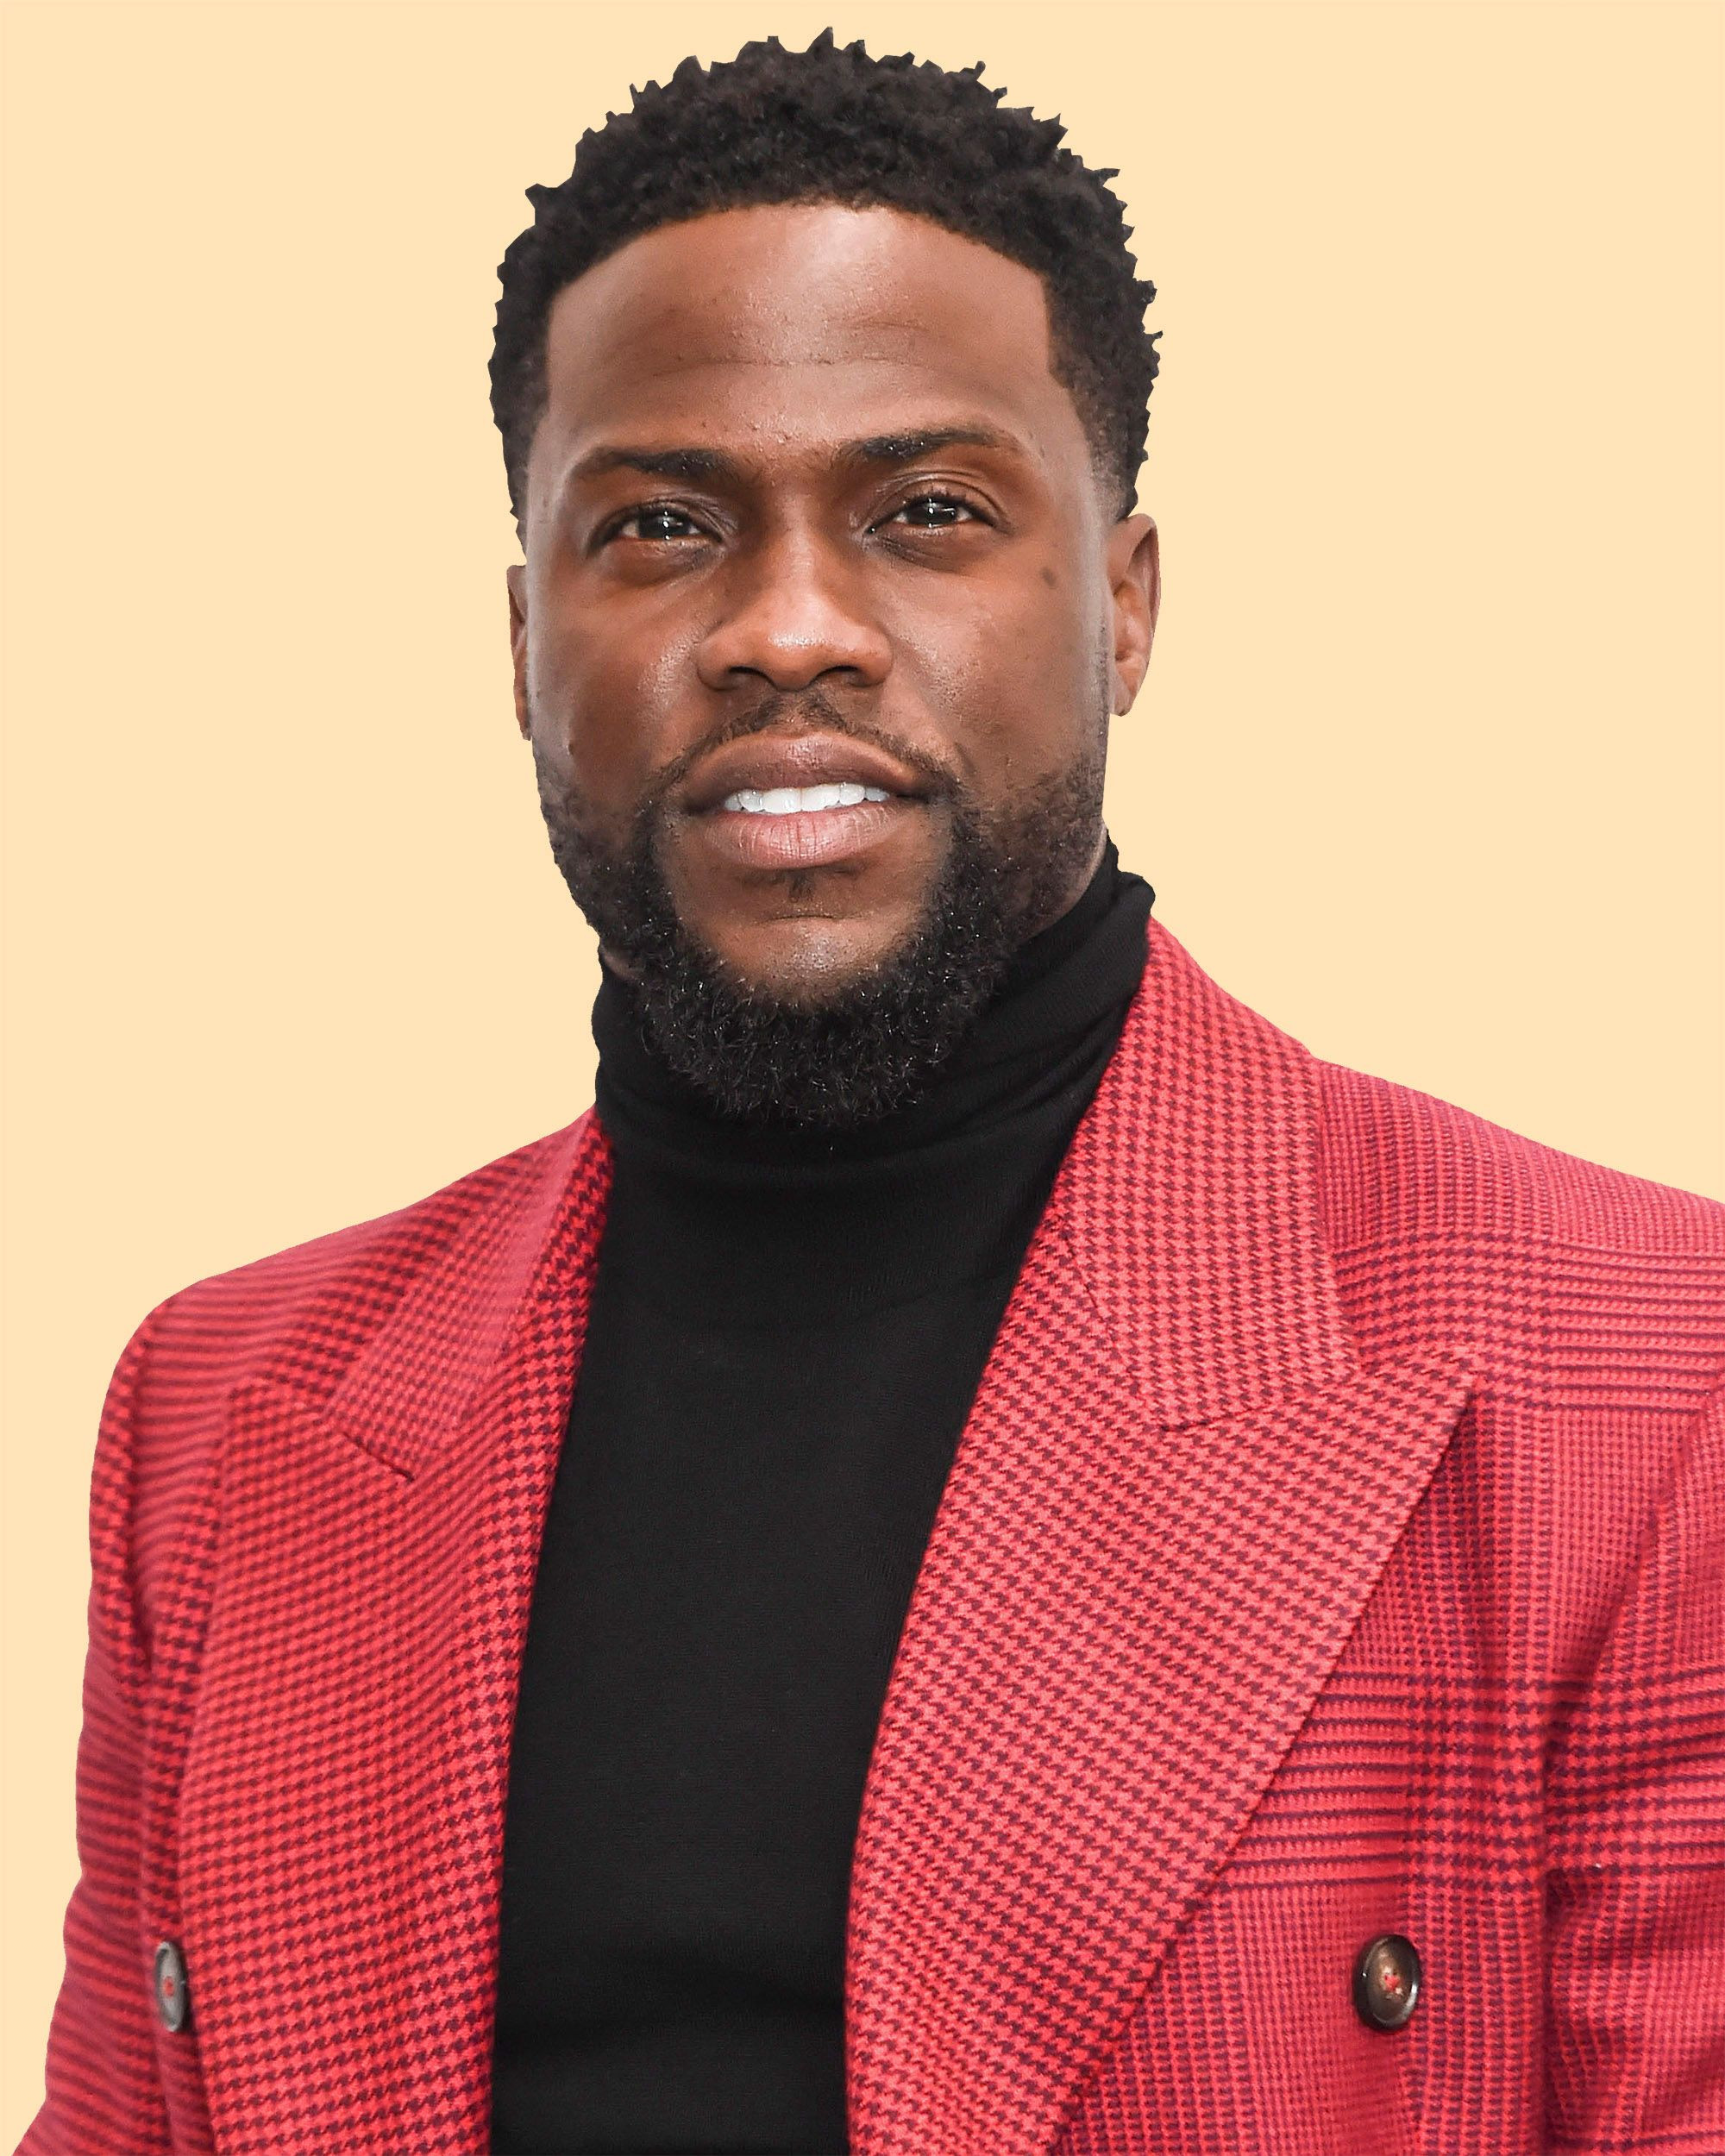 Two completely different America we are living in, if those who invaded the Capitol building are black they would have all been shot dead - Kevin Hart lindaikejisblog